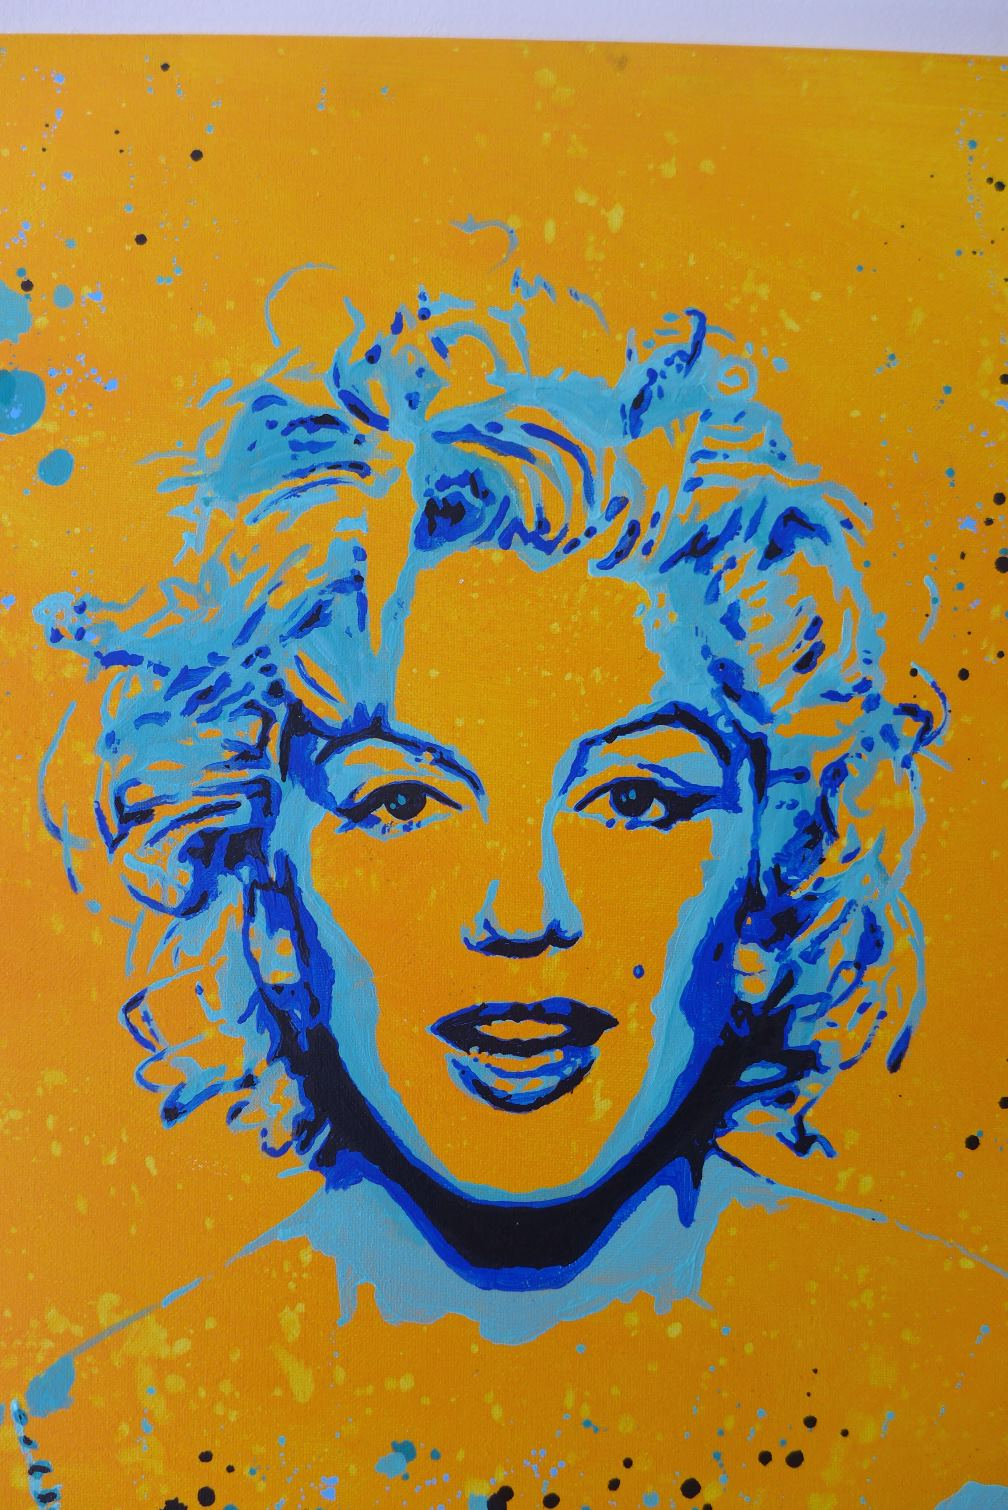 Tableau Street Art Marilyn Monroe splash detail- Slave 2.0